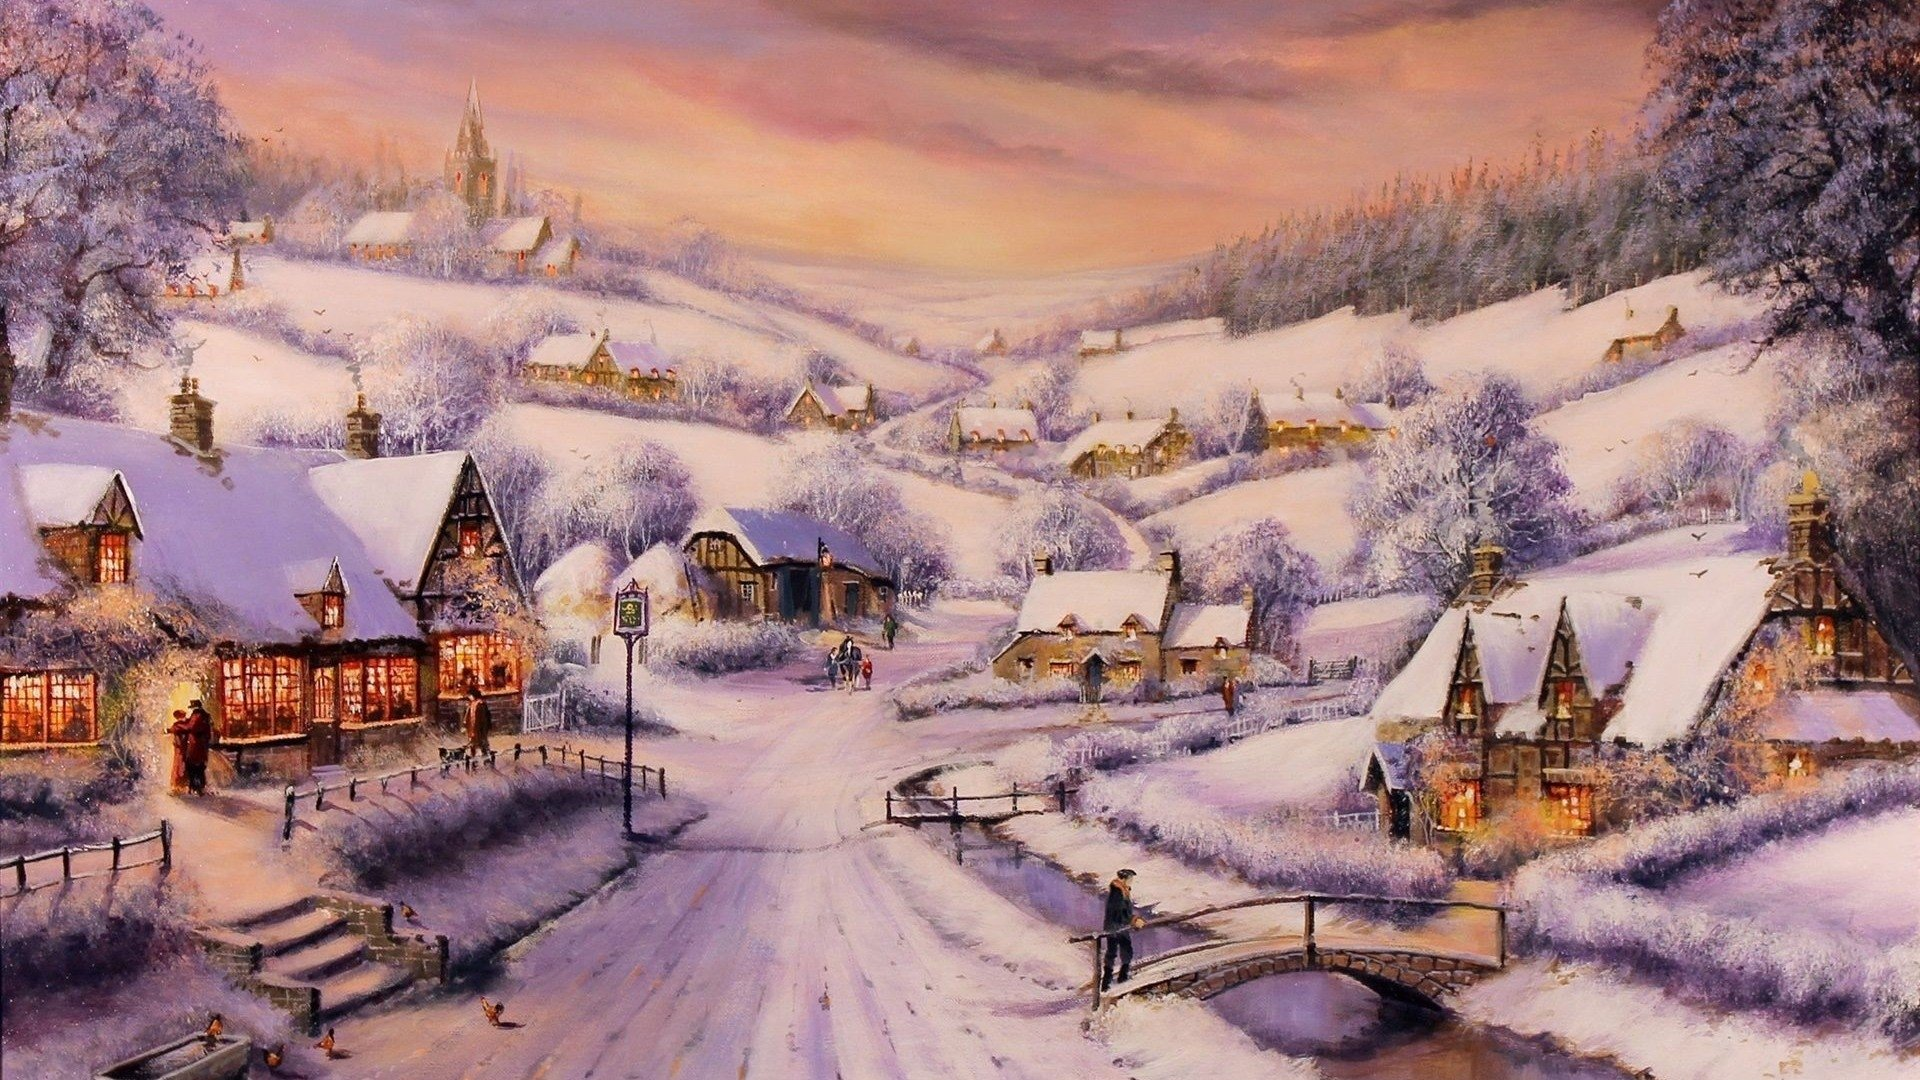 Snowy winter village hd wallpaper background image - Art village wallpaper ...